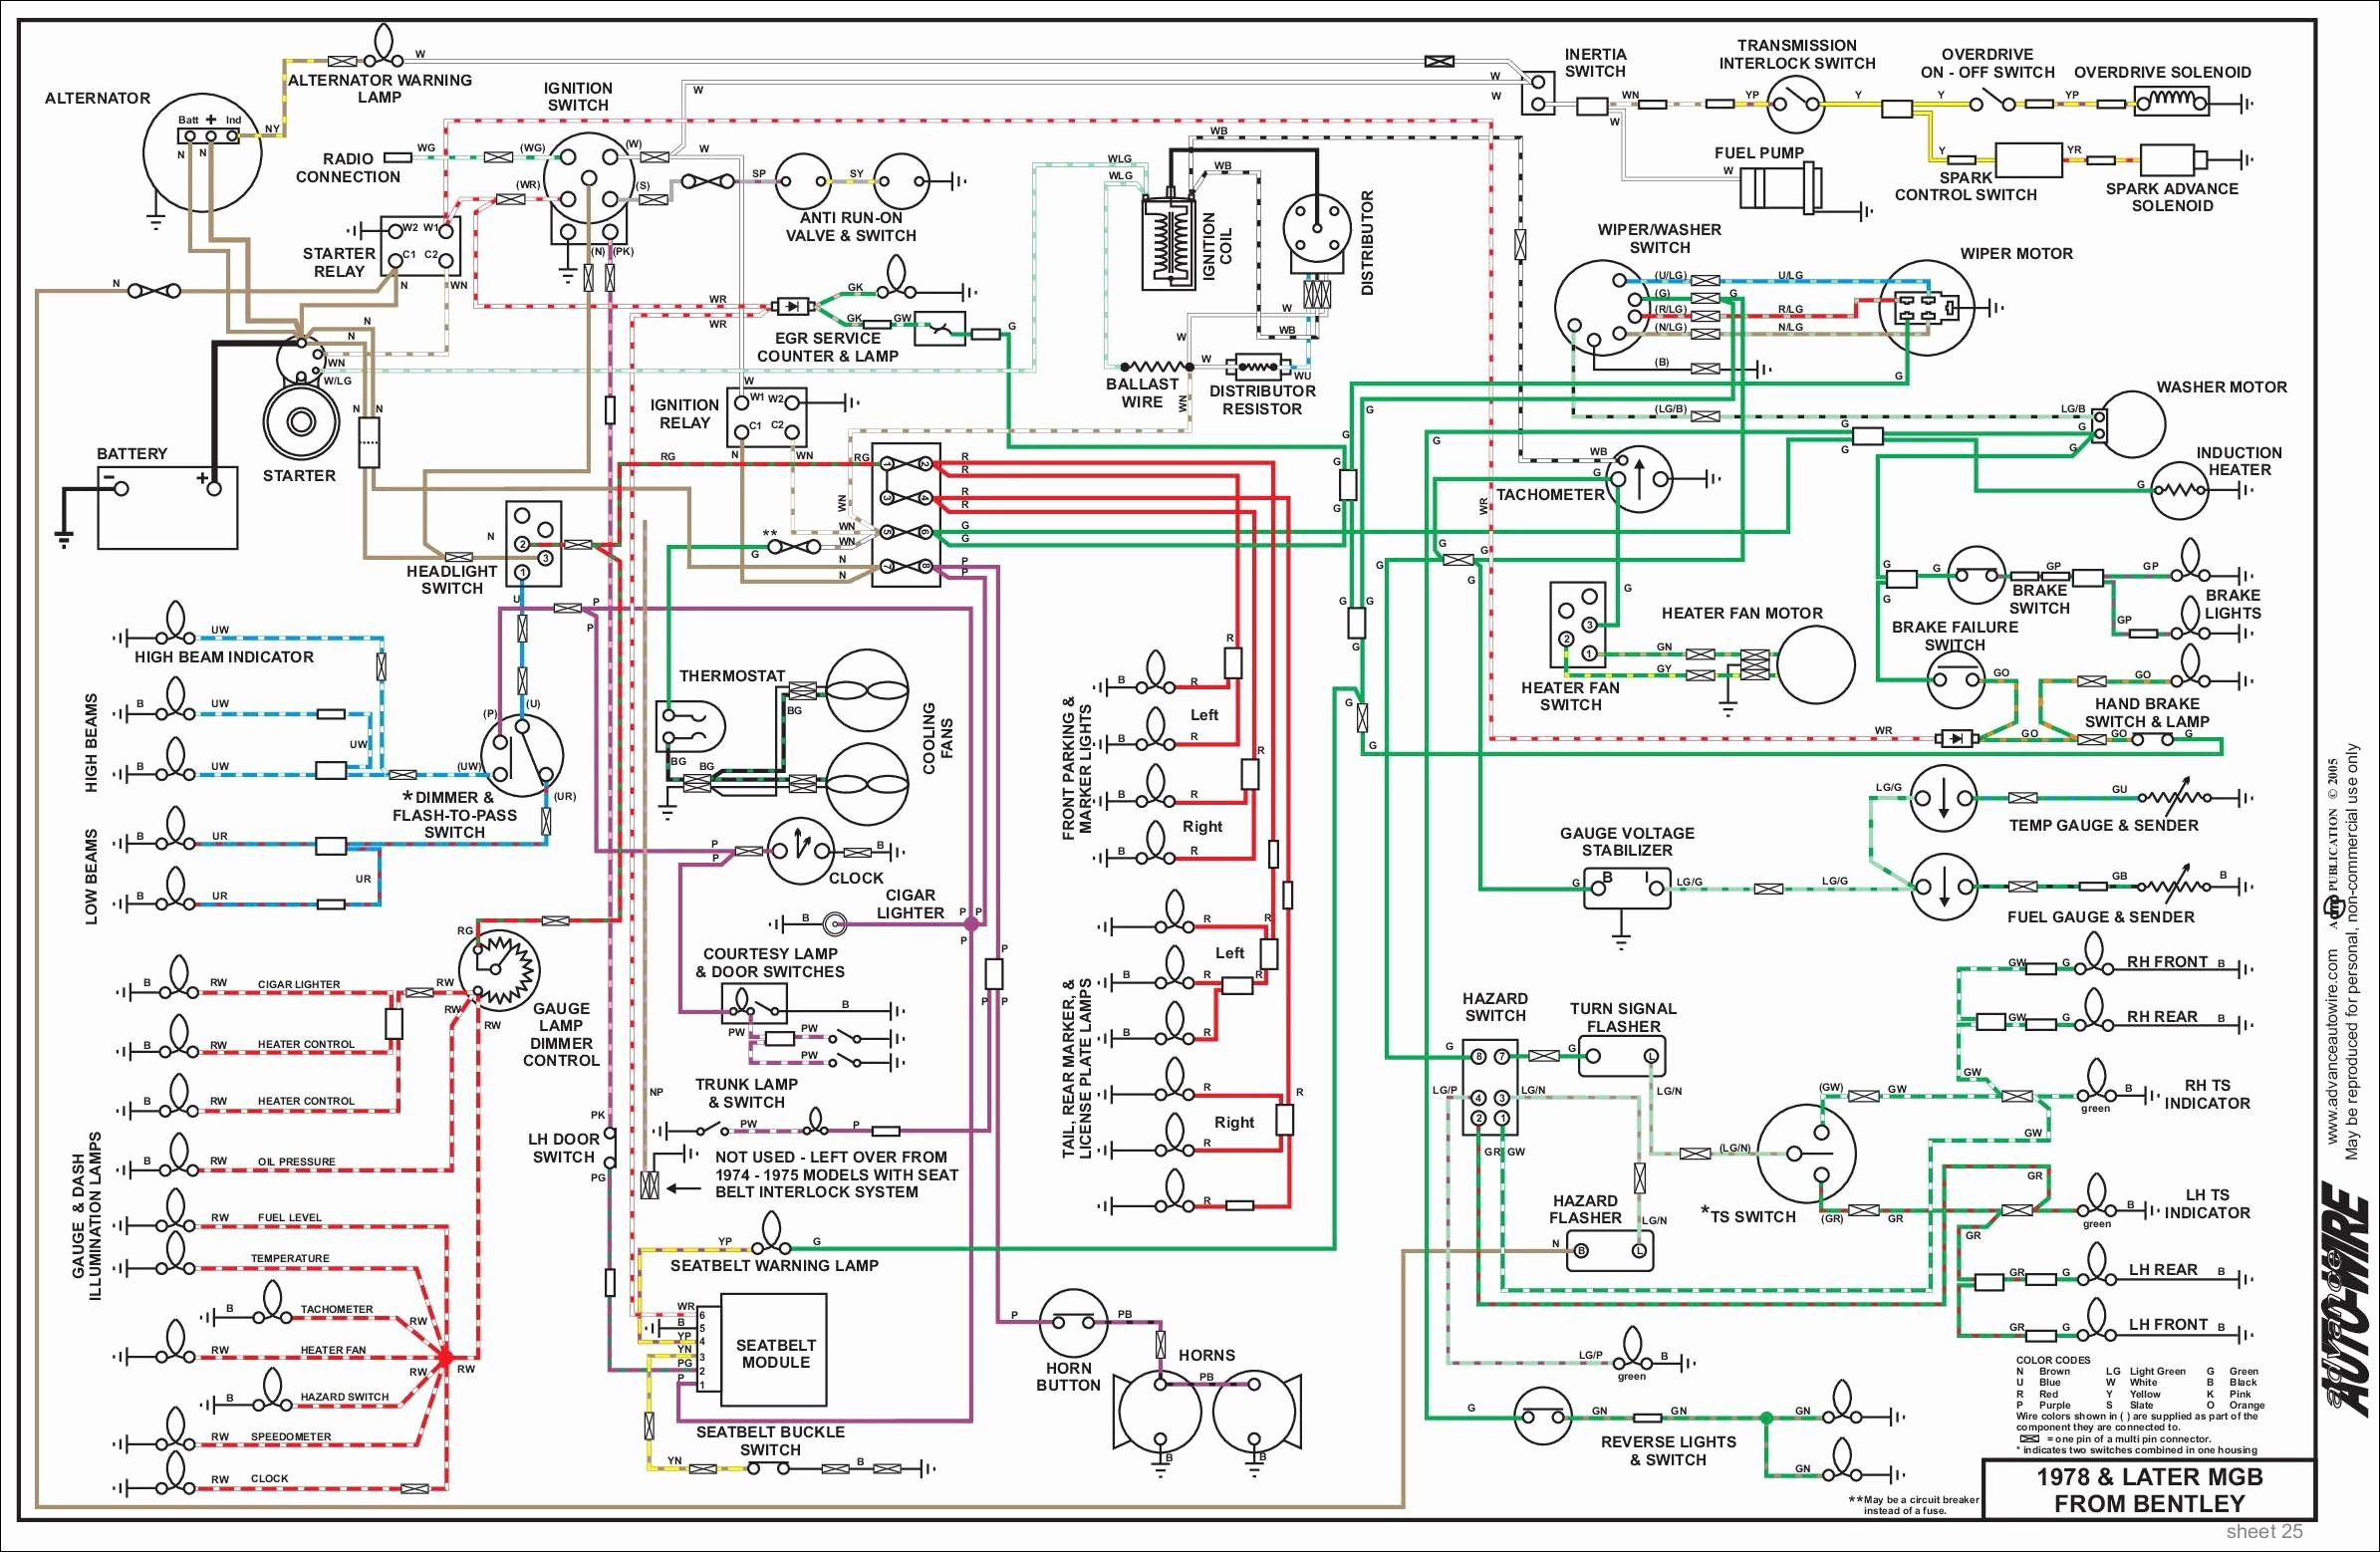 1957 Mg Wiring Diagram | Wiring Diagram  Mg Wiring Diagram on mg midget fuse box diagram, mg midget distributor wiring, mg chassis diagram, mg alternator wiring,